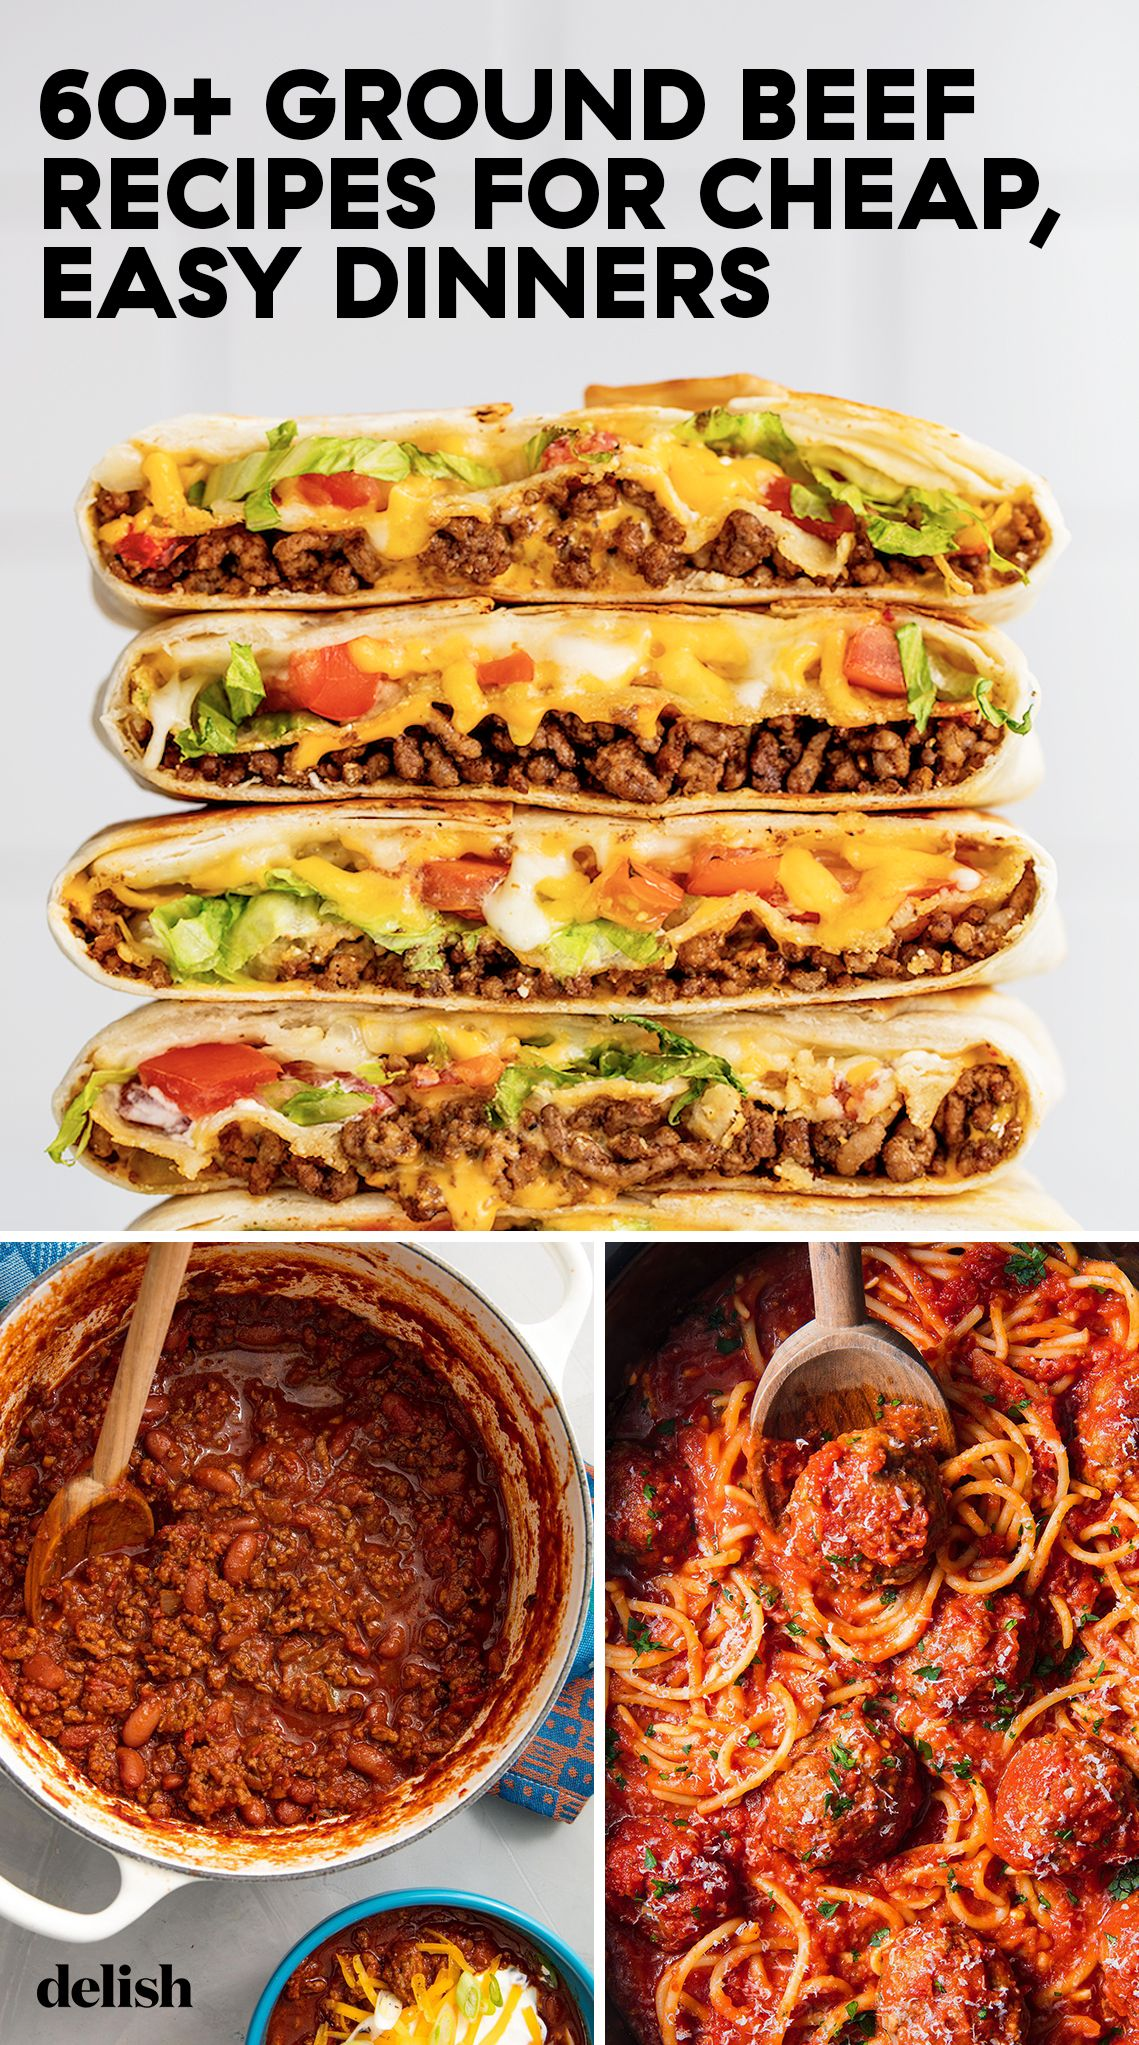 Easy Ground Beef Recipes images